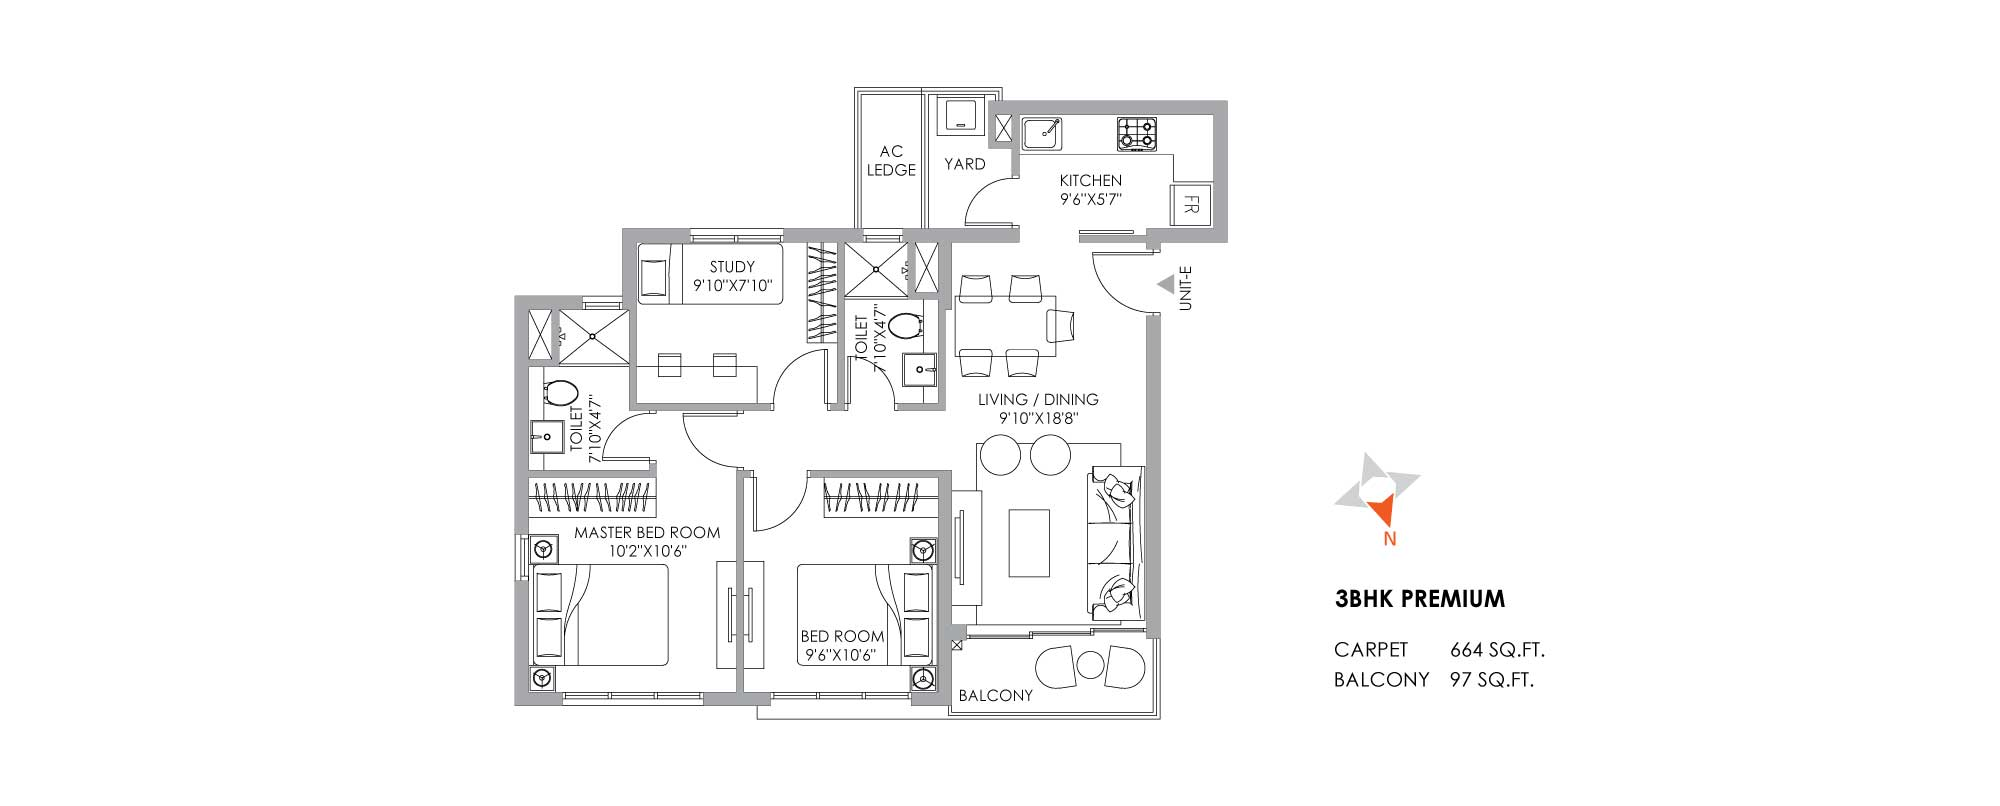 One10 Unit Plan Premium 664 SQFT